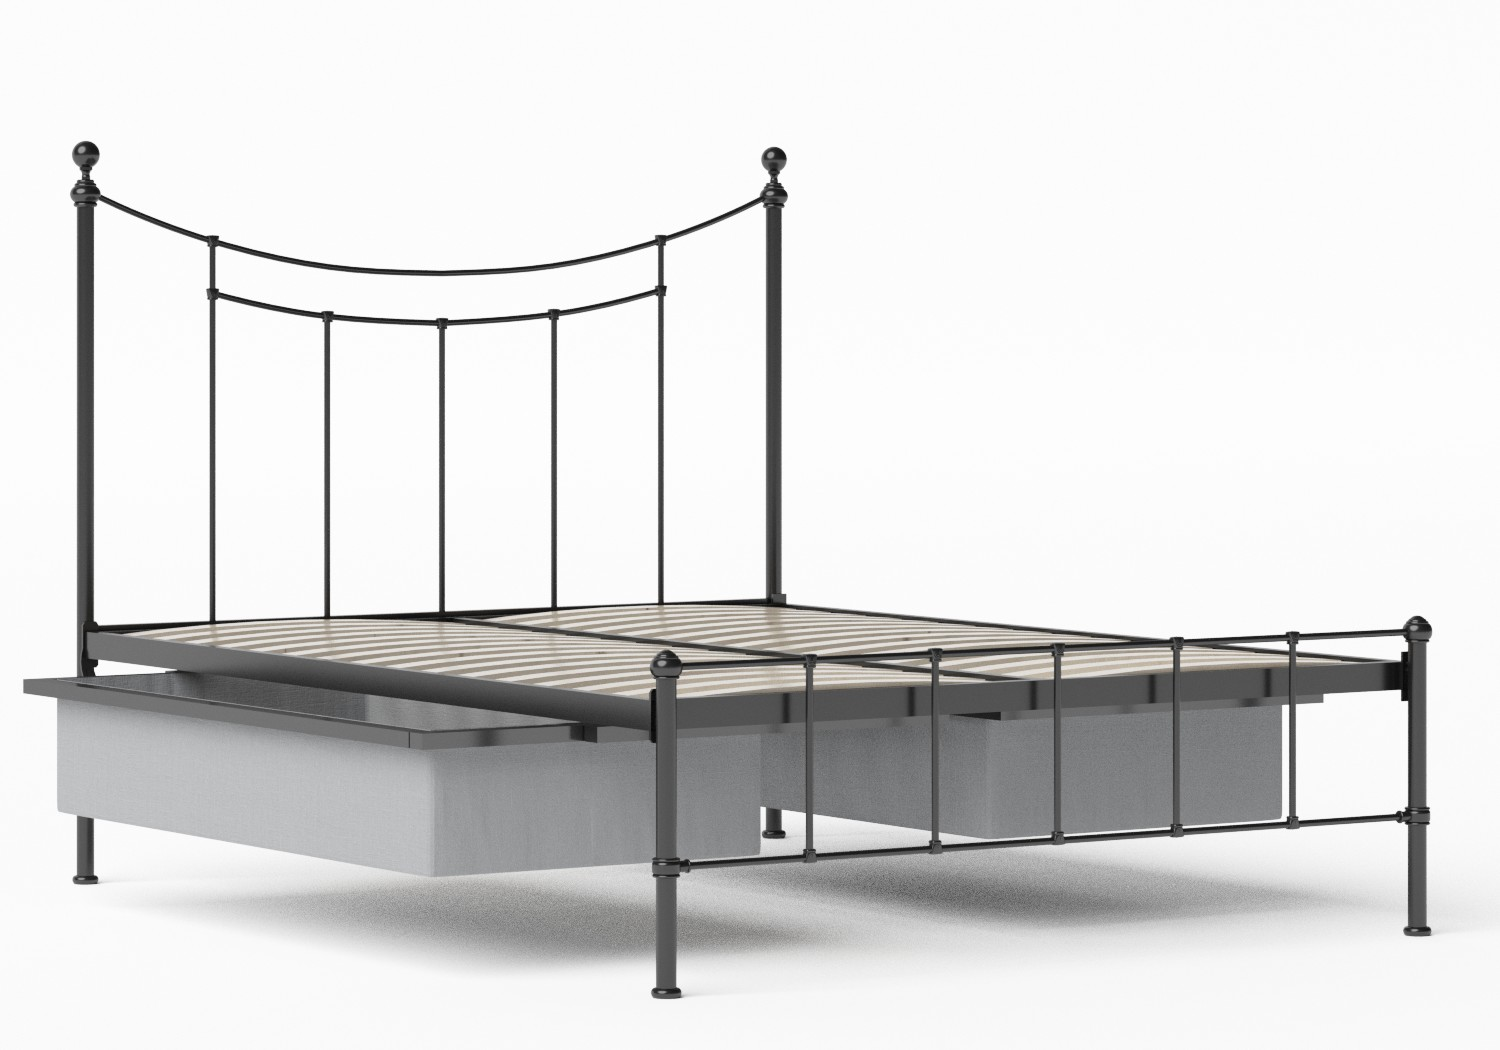 Isabelle Iron/Metal Bed in Satin Black shown with underbed storage